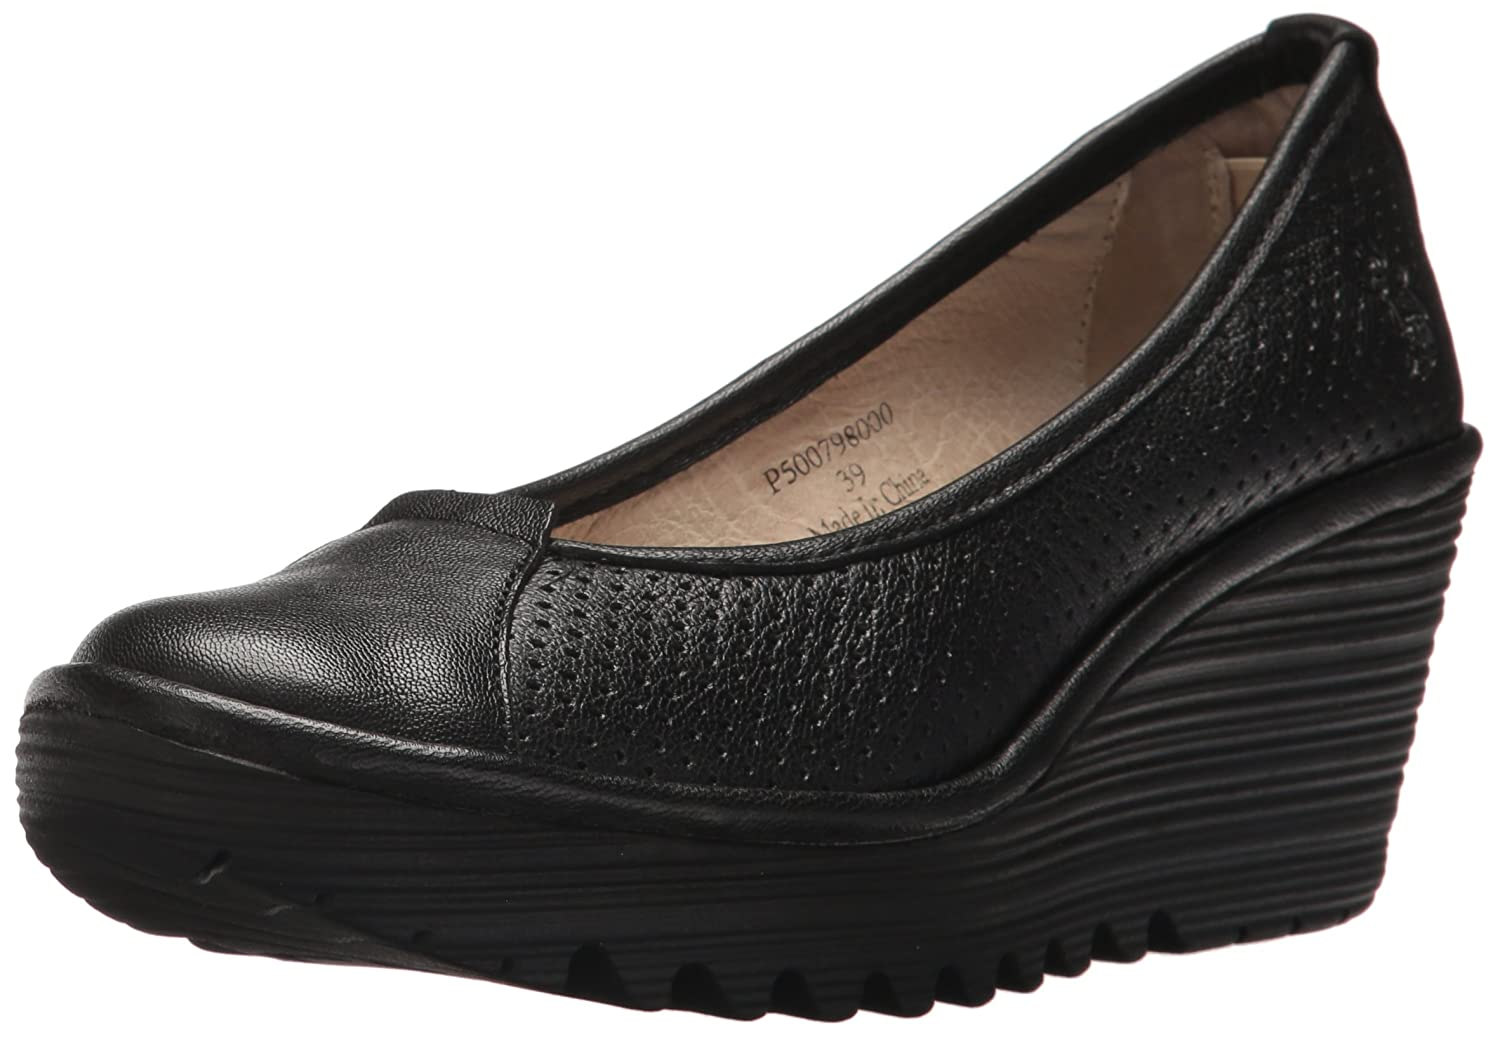 FLY London Women's Yuzi798fly Pump B071HTJ34G 37 M EU (6.5-7 US)|Black Mousse